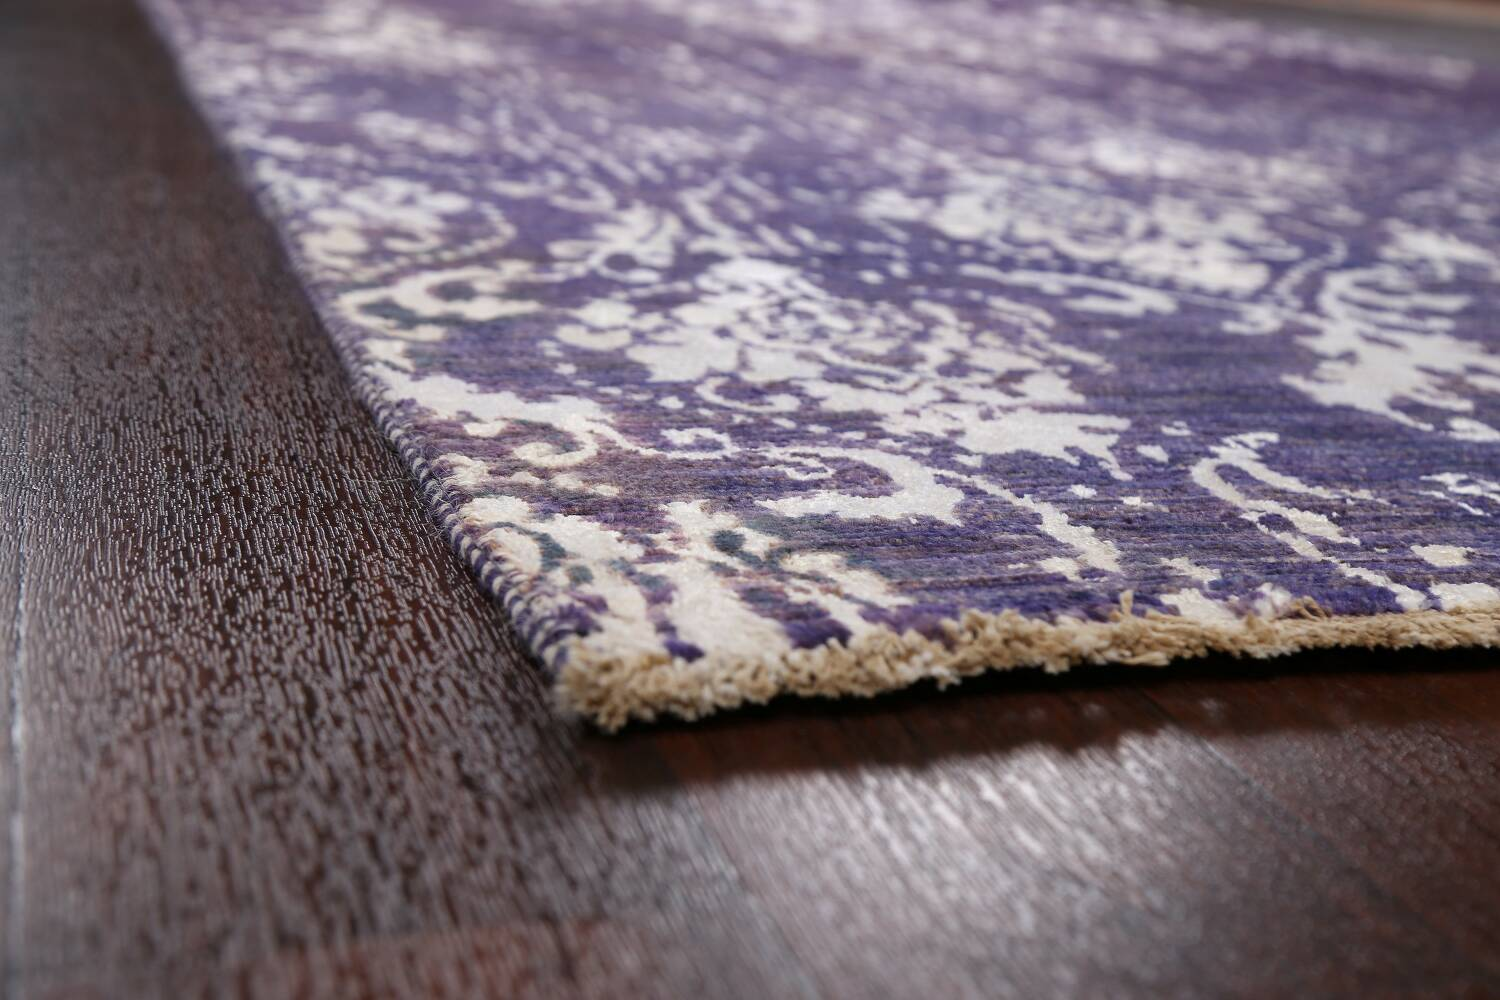 Vegetable Dye Distressed Abstract Oriental Area Rug 6x9 image 6